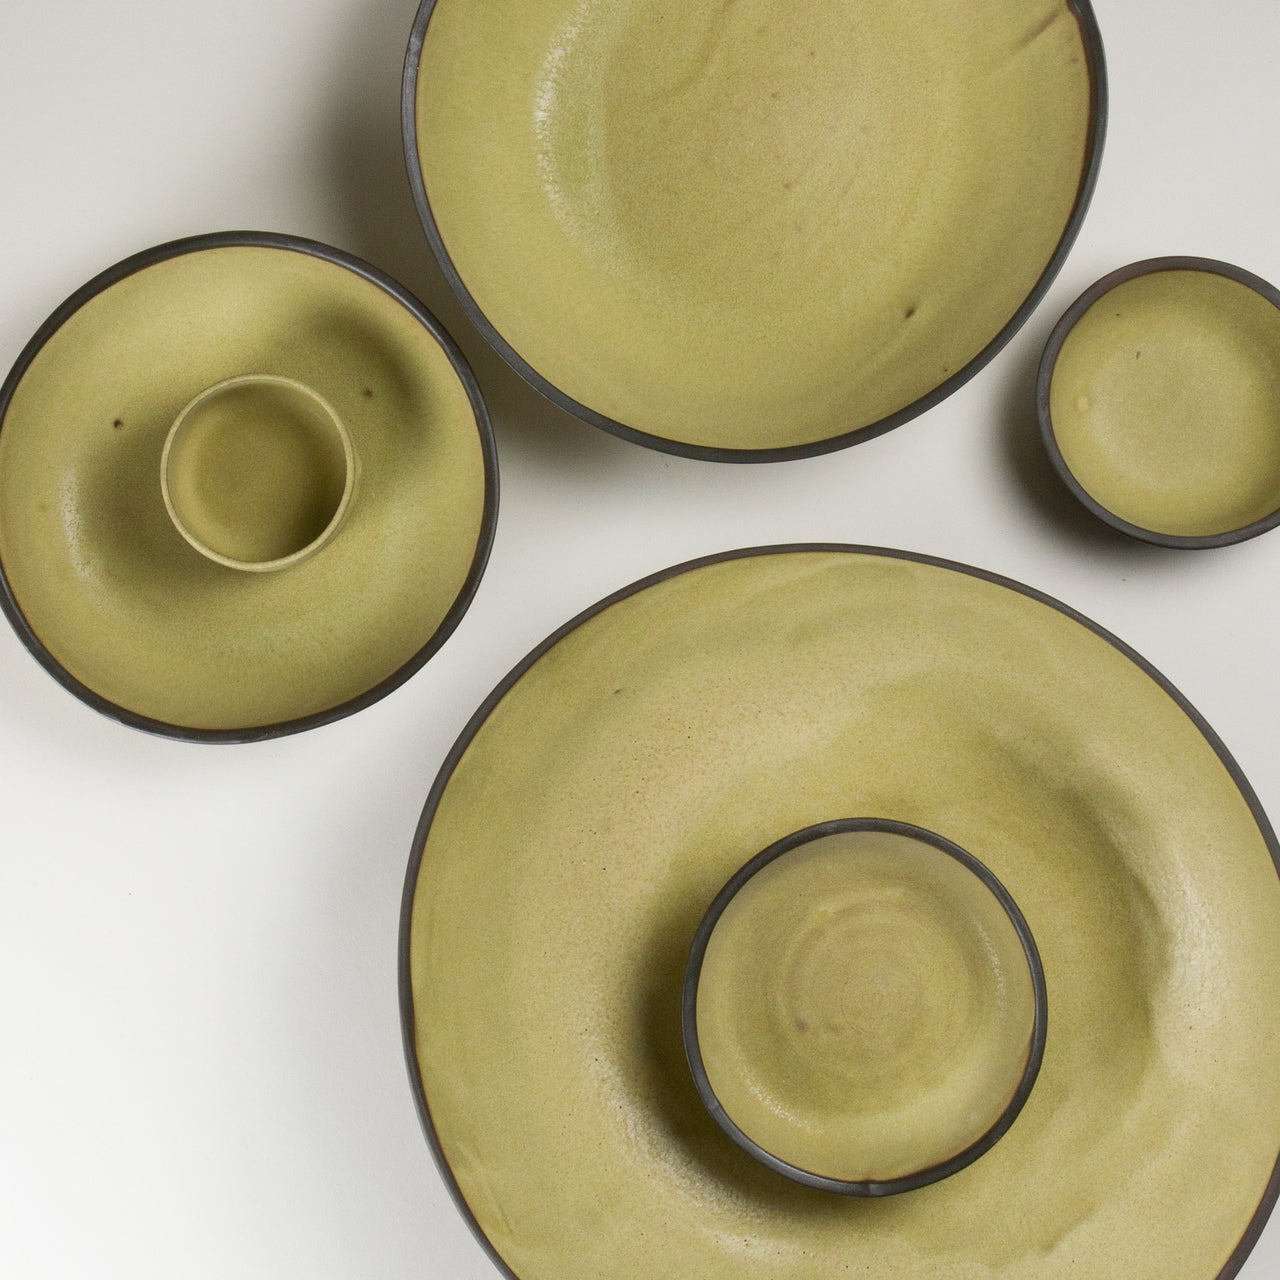 Elements Yellow Ore Bowls 2